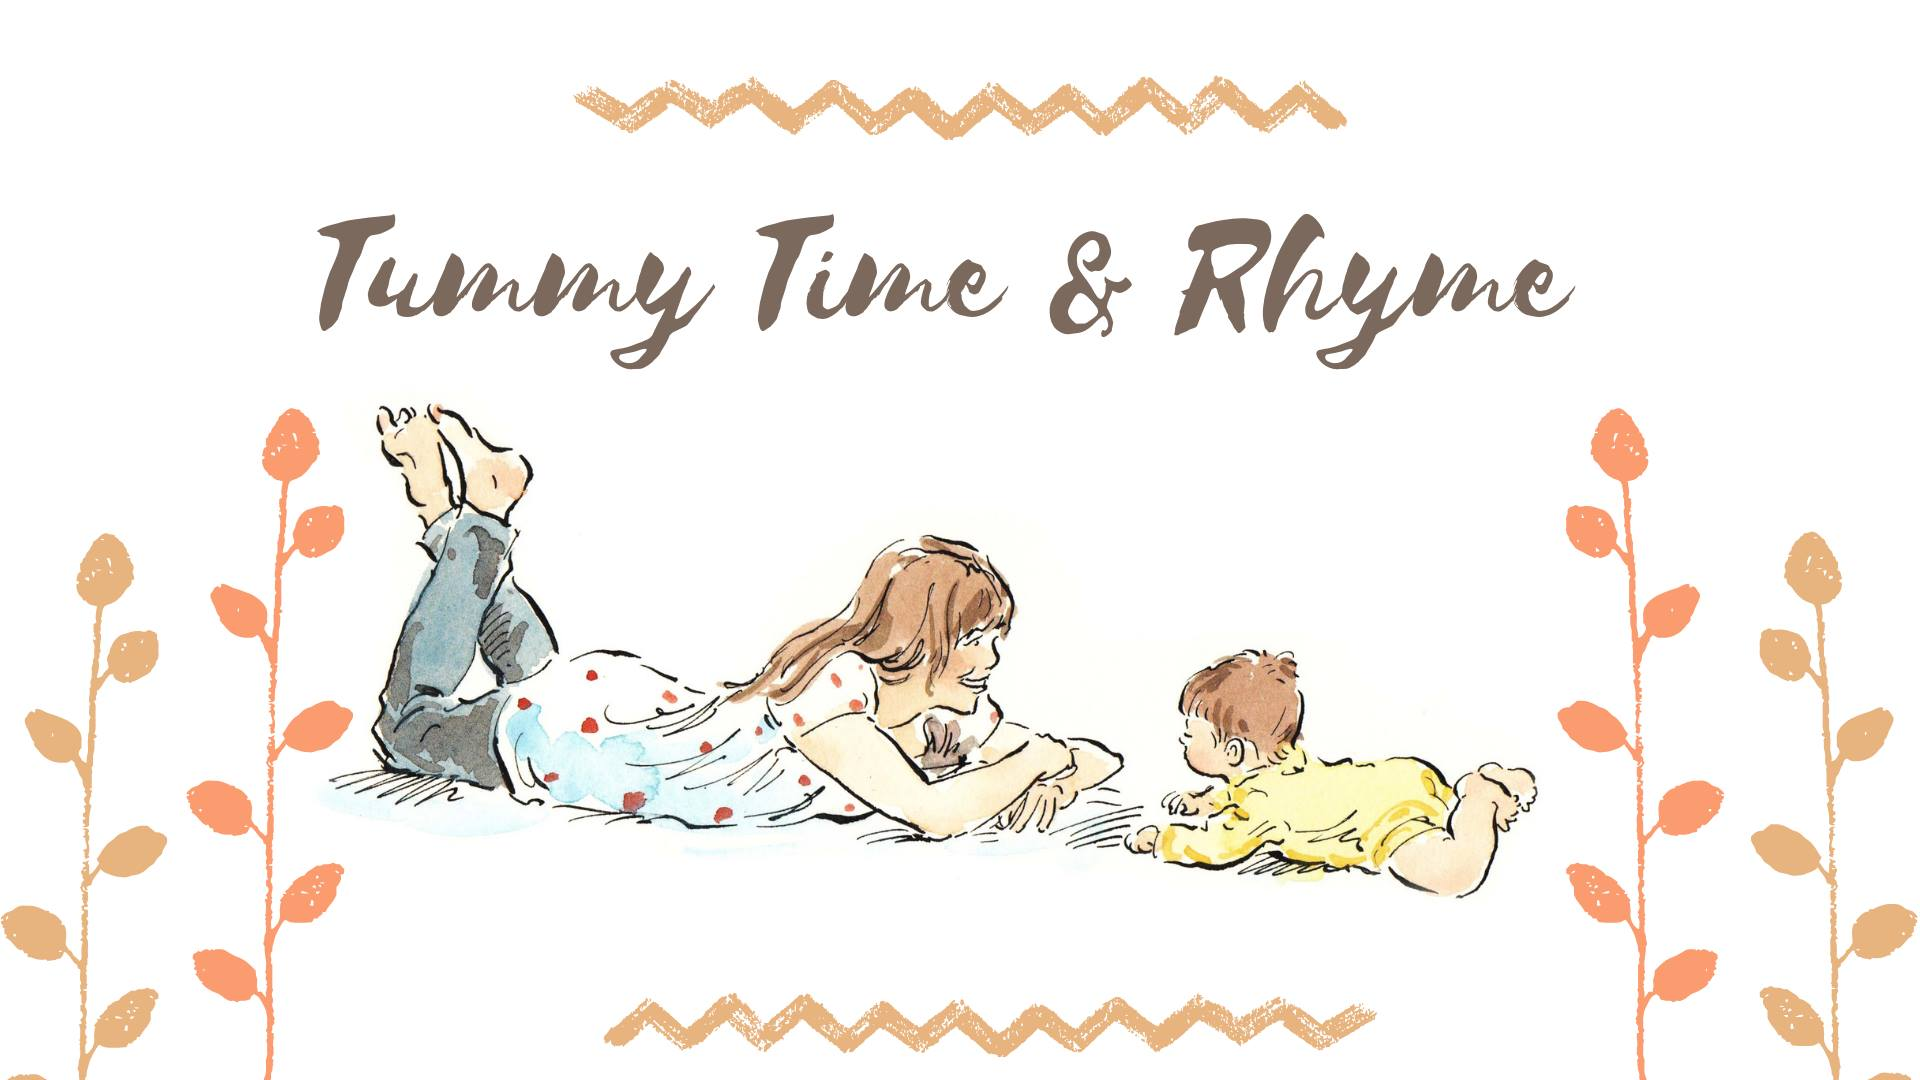 Tummy Time & Rhyme